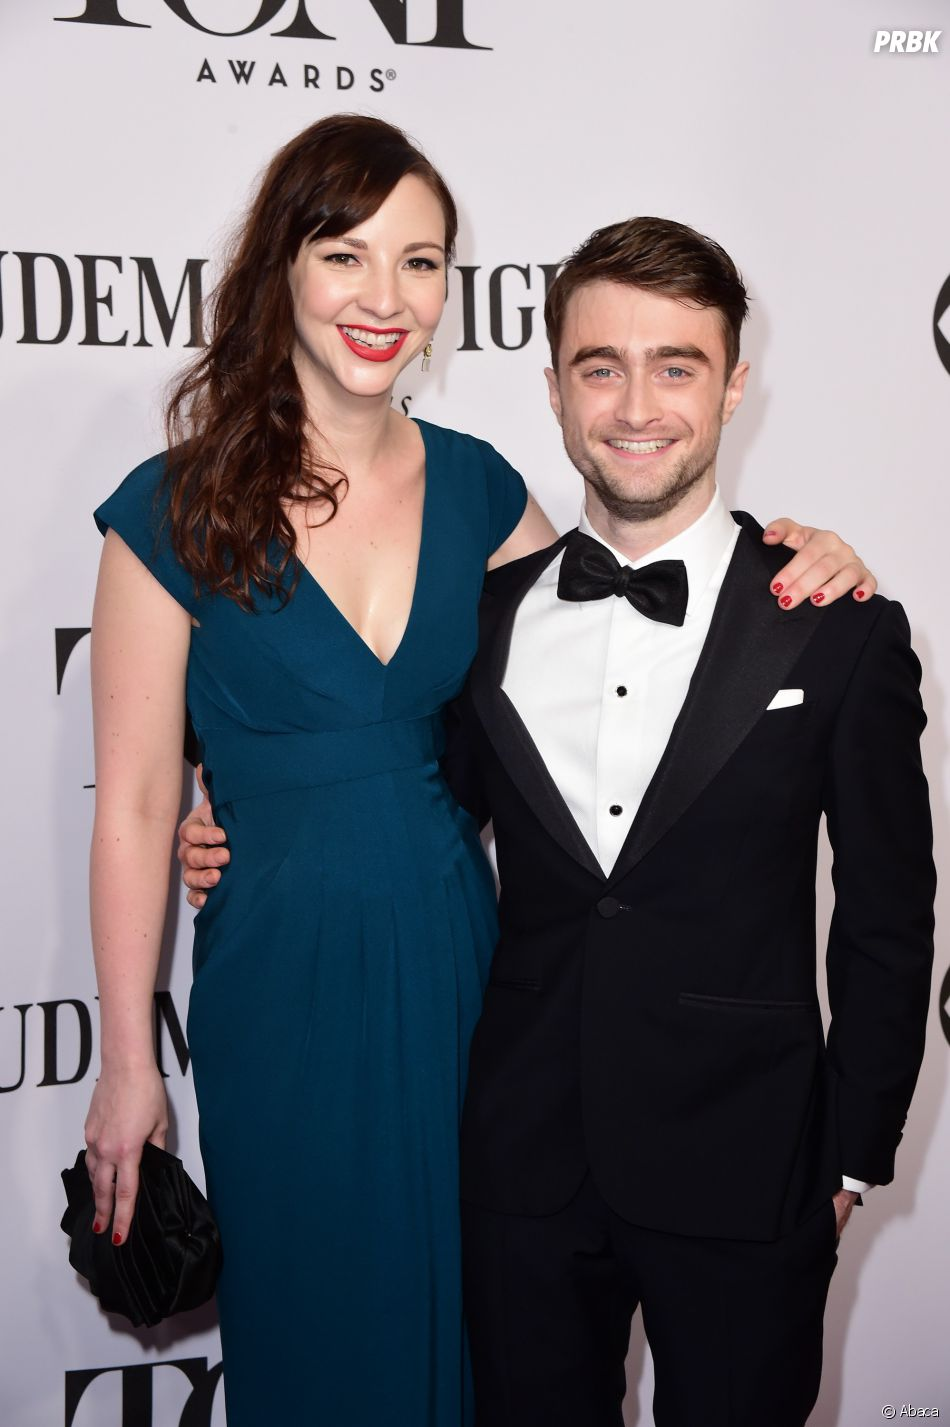 Daniel Radcliffe (Harry Potter) et Erin Darke : premier tapis rouge pour le couple en 2014 aux Tony Awards